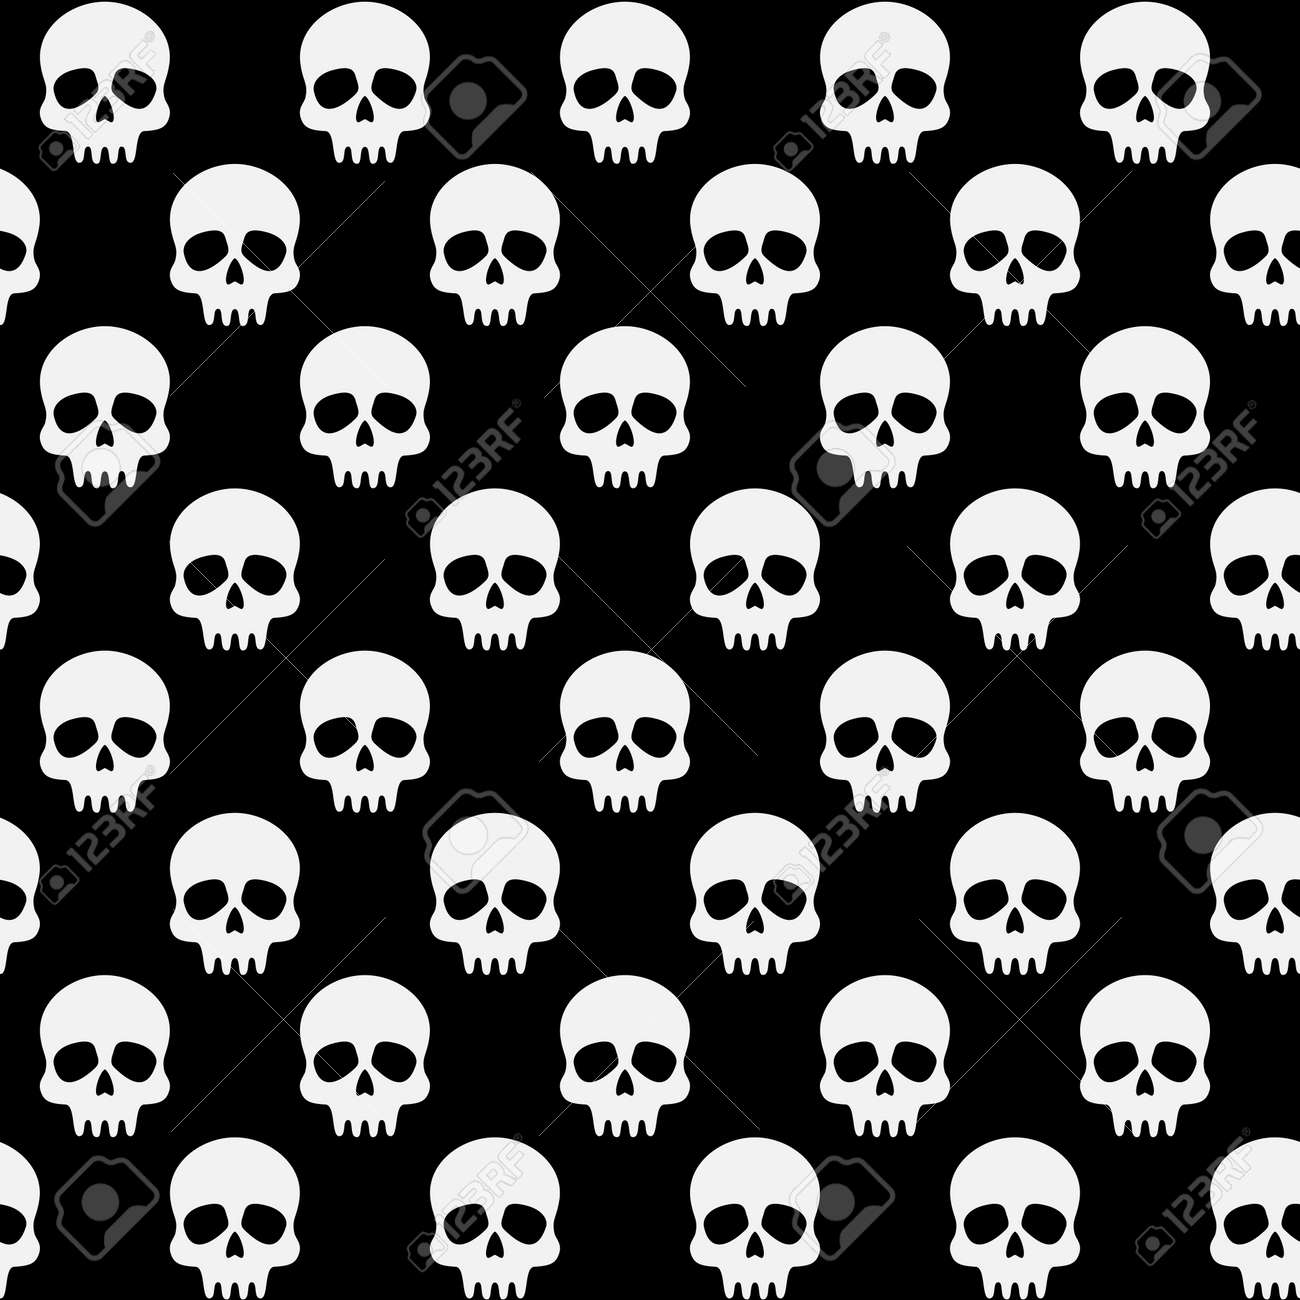 Halloween Vector Black And White.Black And White Pattern With Skulls Halloween Vector Seamless